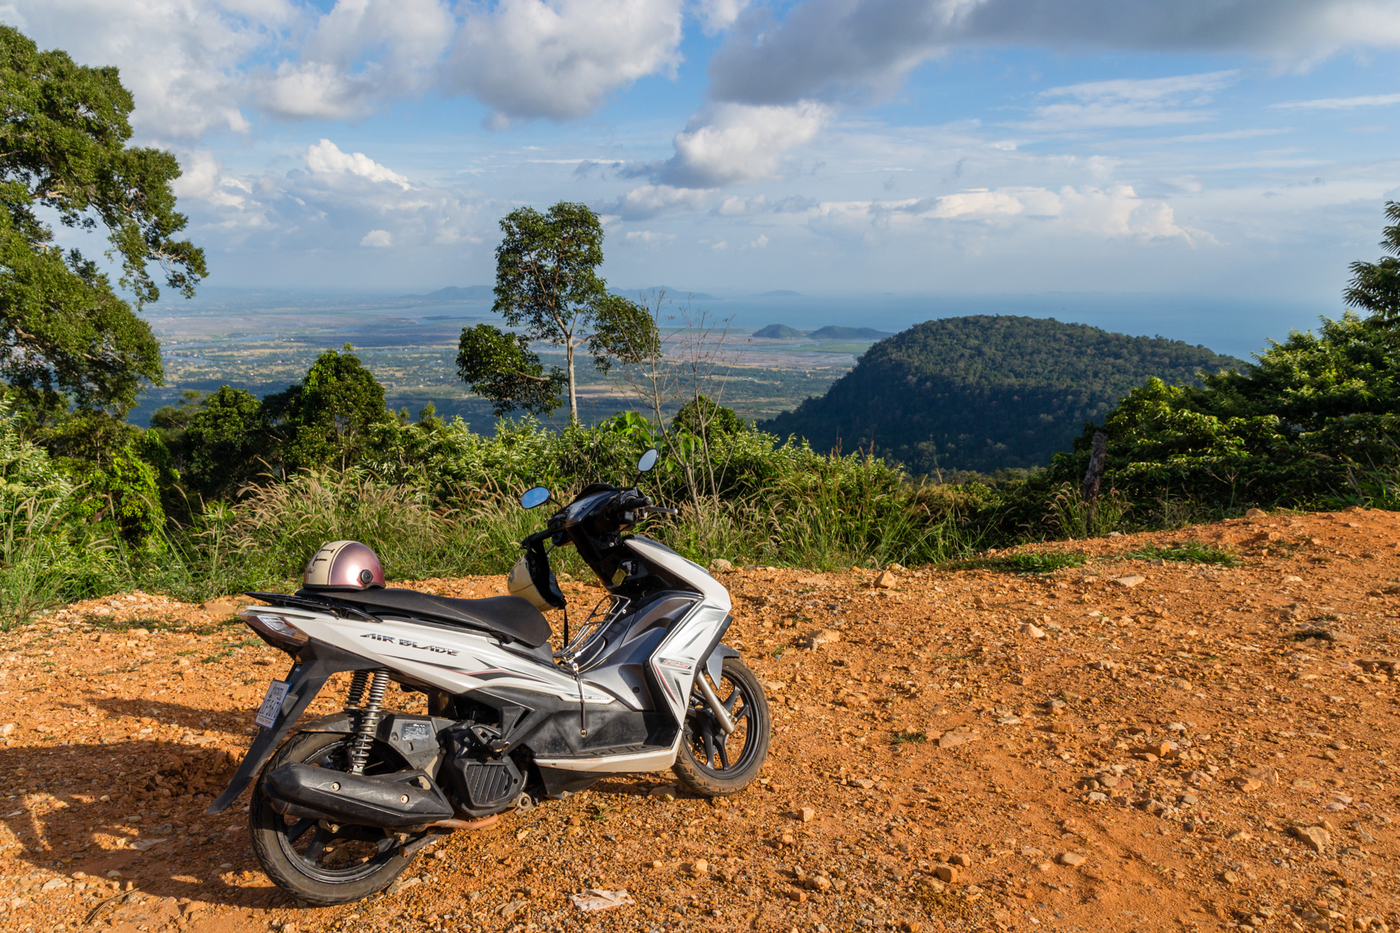 Bokor-drive-up-the-hill.jpg